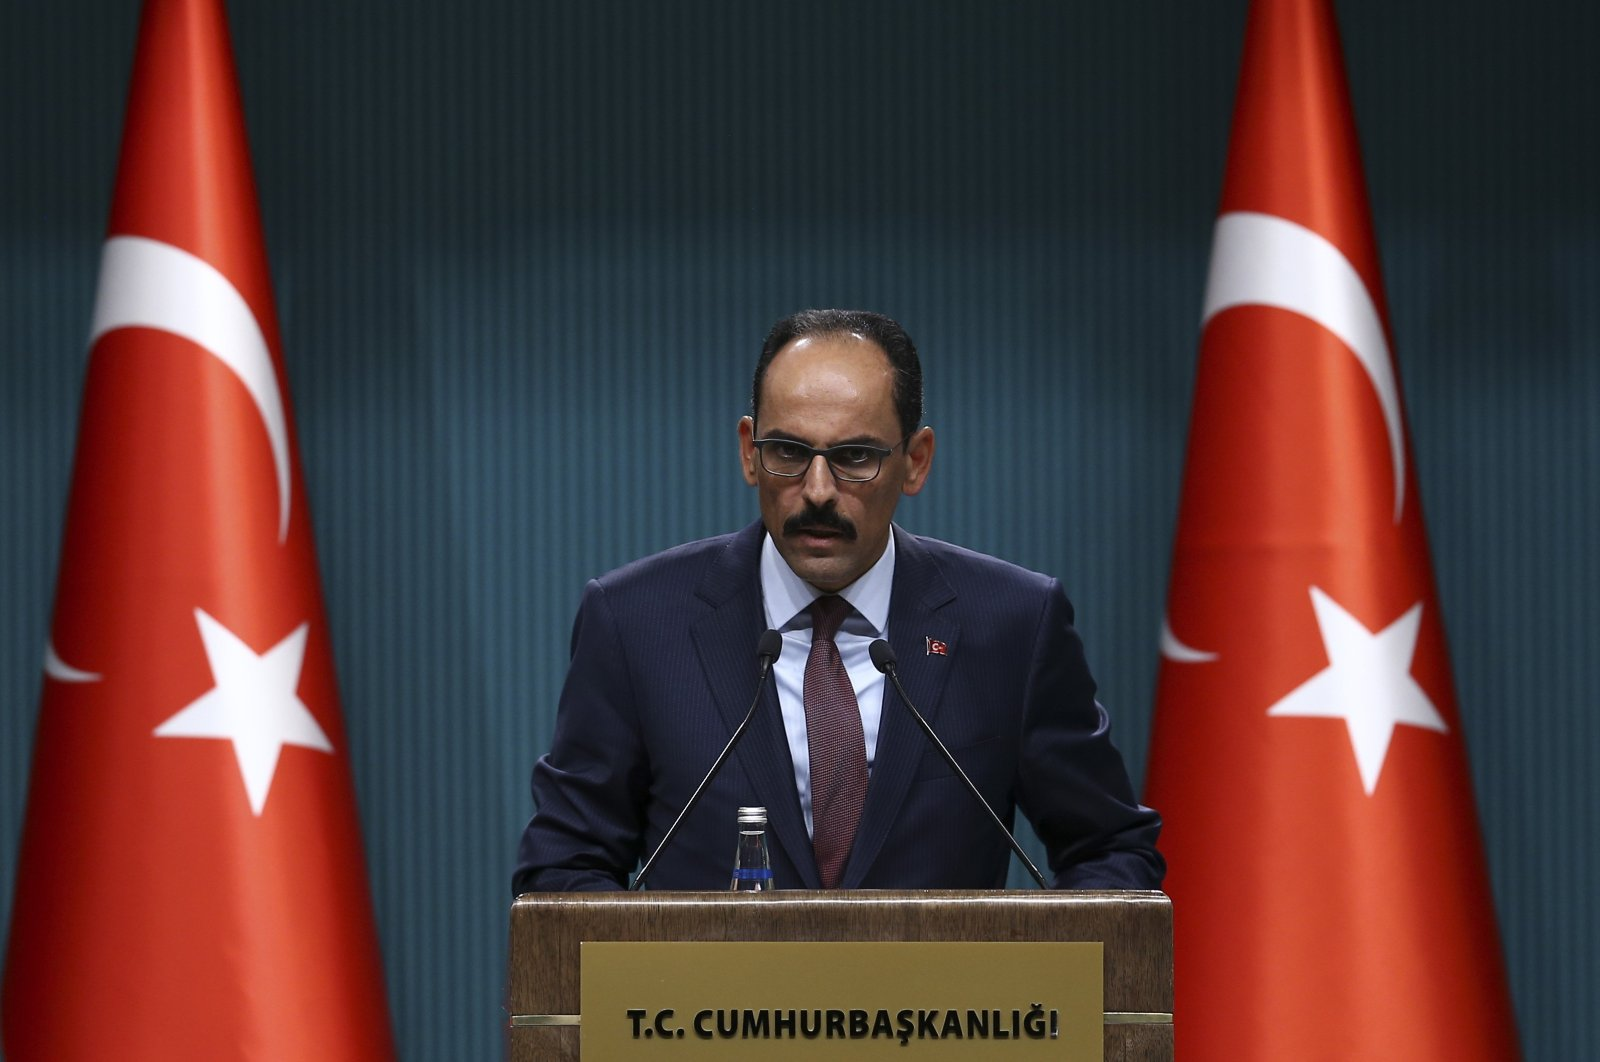 Presidential spokesman Ibrahim Kalın speaks to reporters during a news conference at the Presidential Complex in Ankara on July 22, 2019. (AA File Photo)